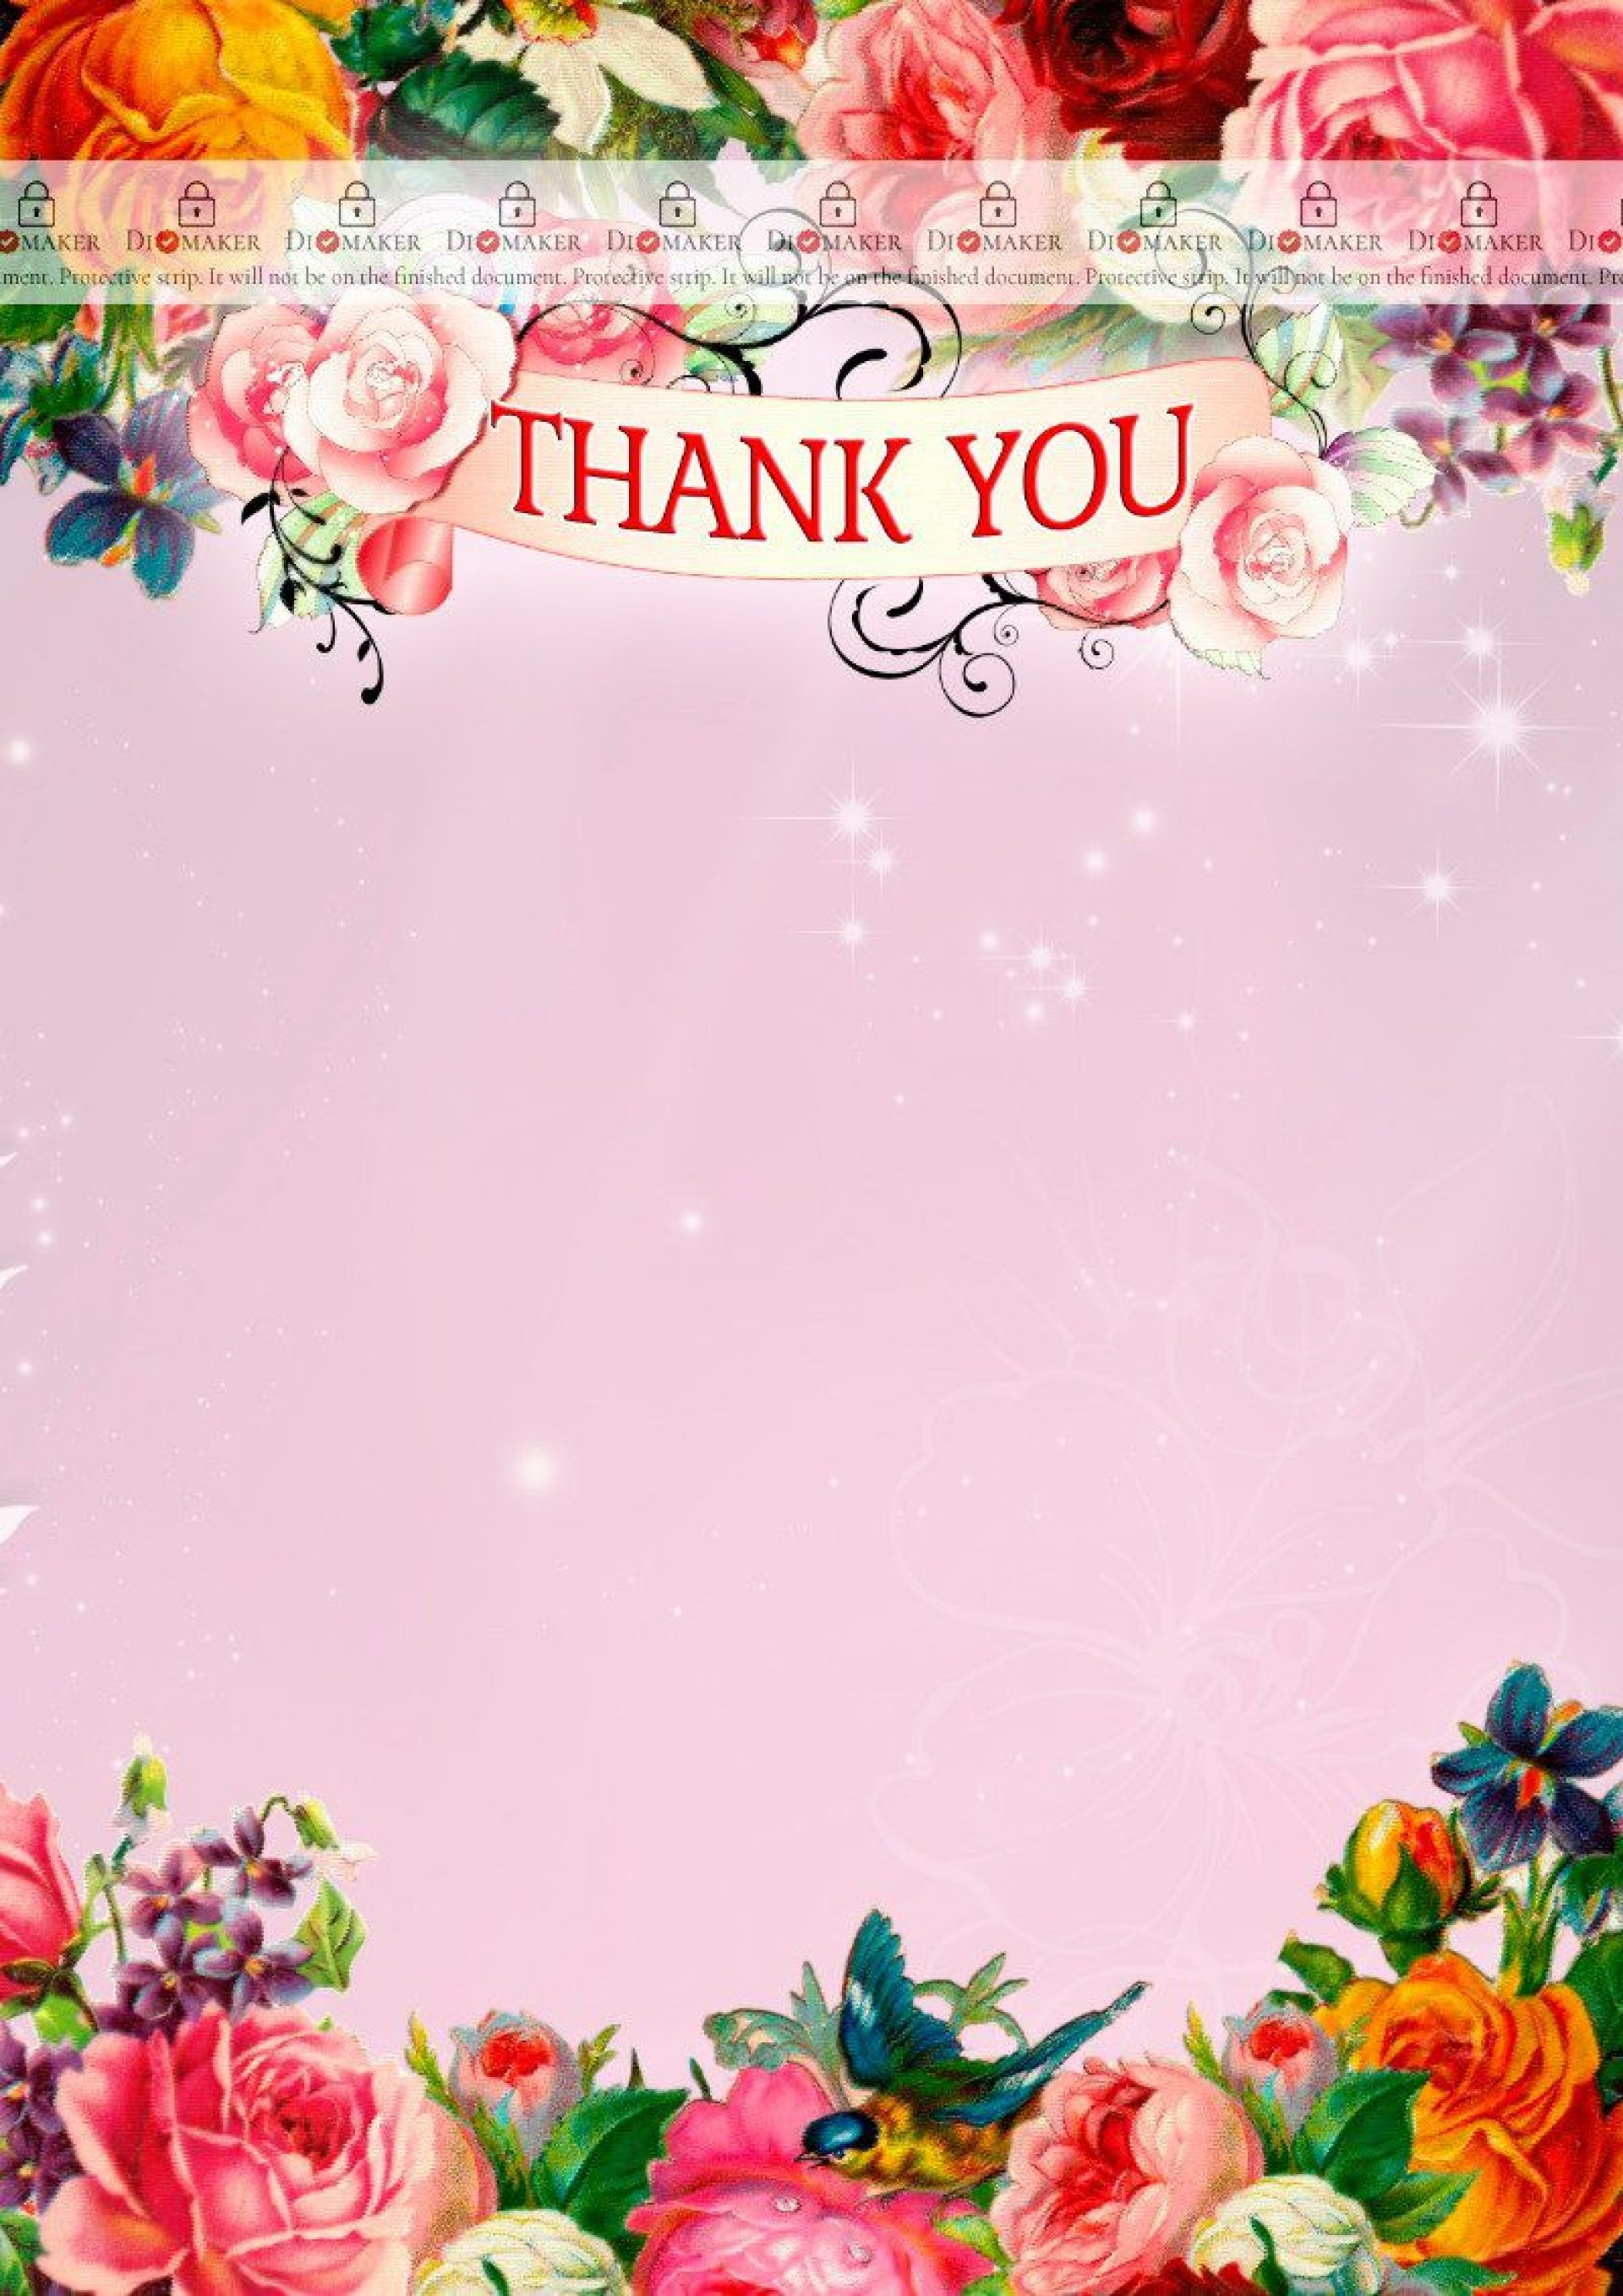 006 Fascinating Thank You Card Template Example  Wedding Busines Word Free1920